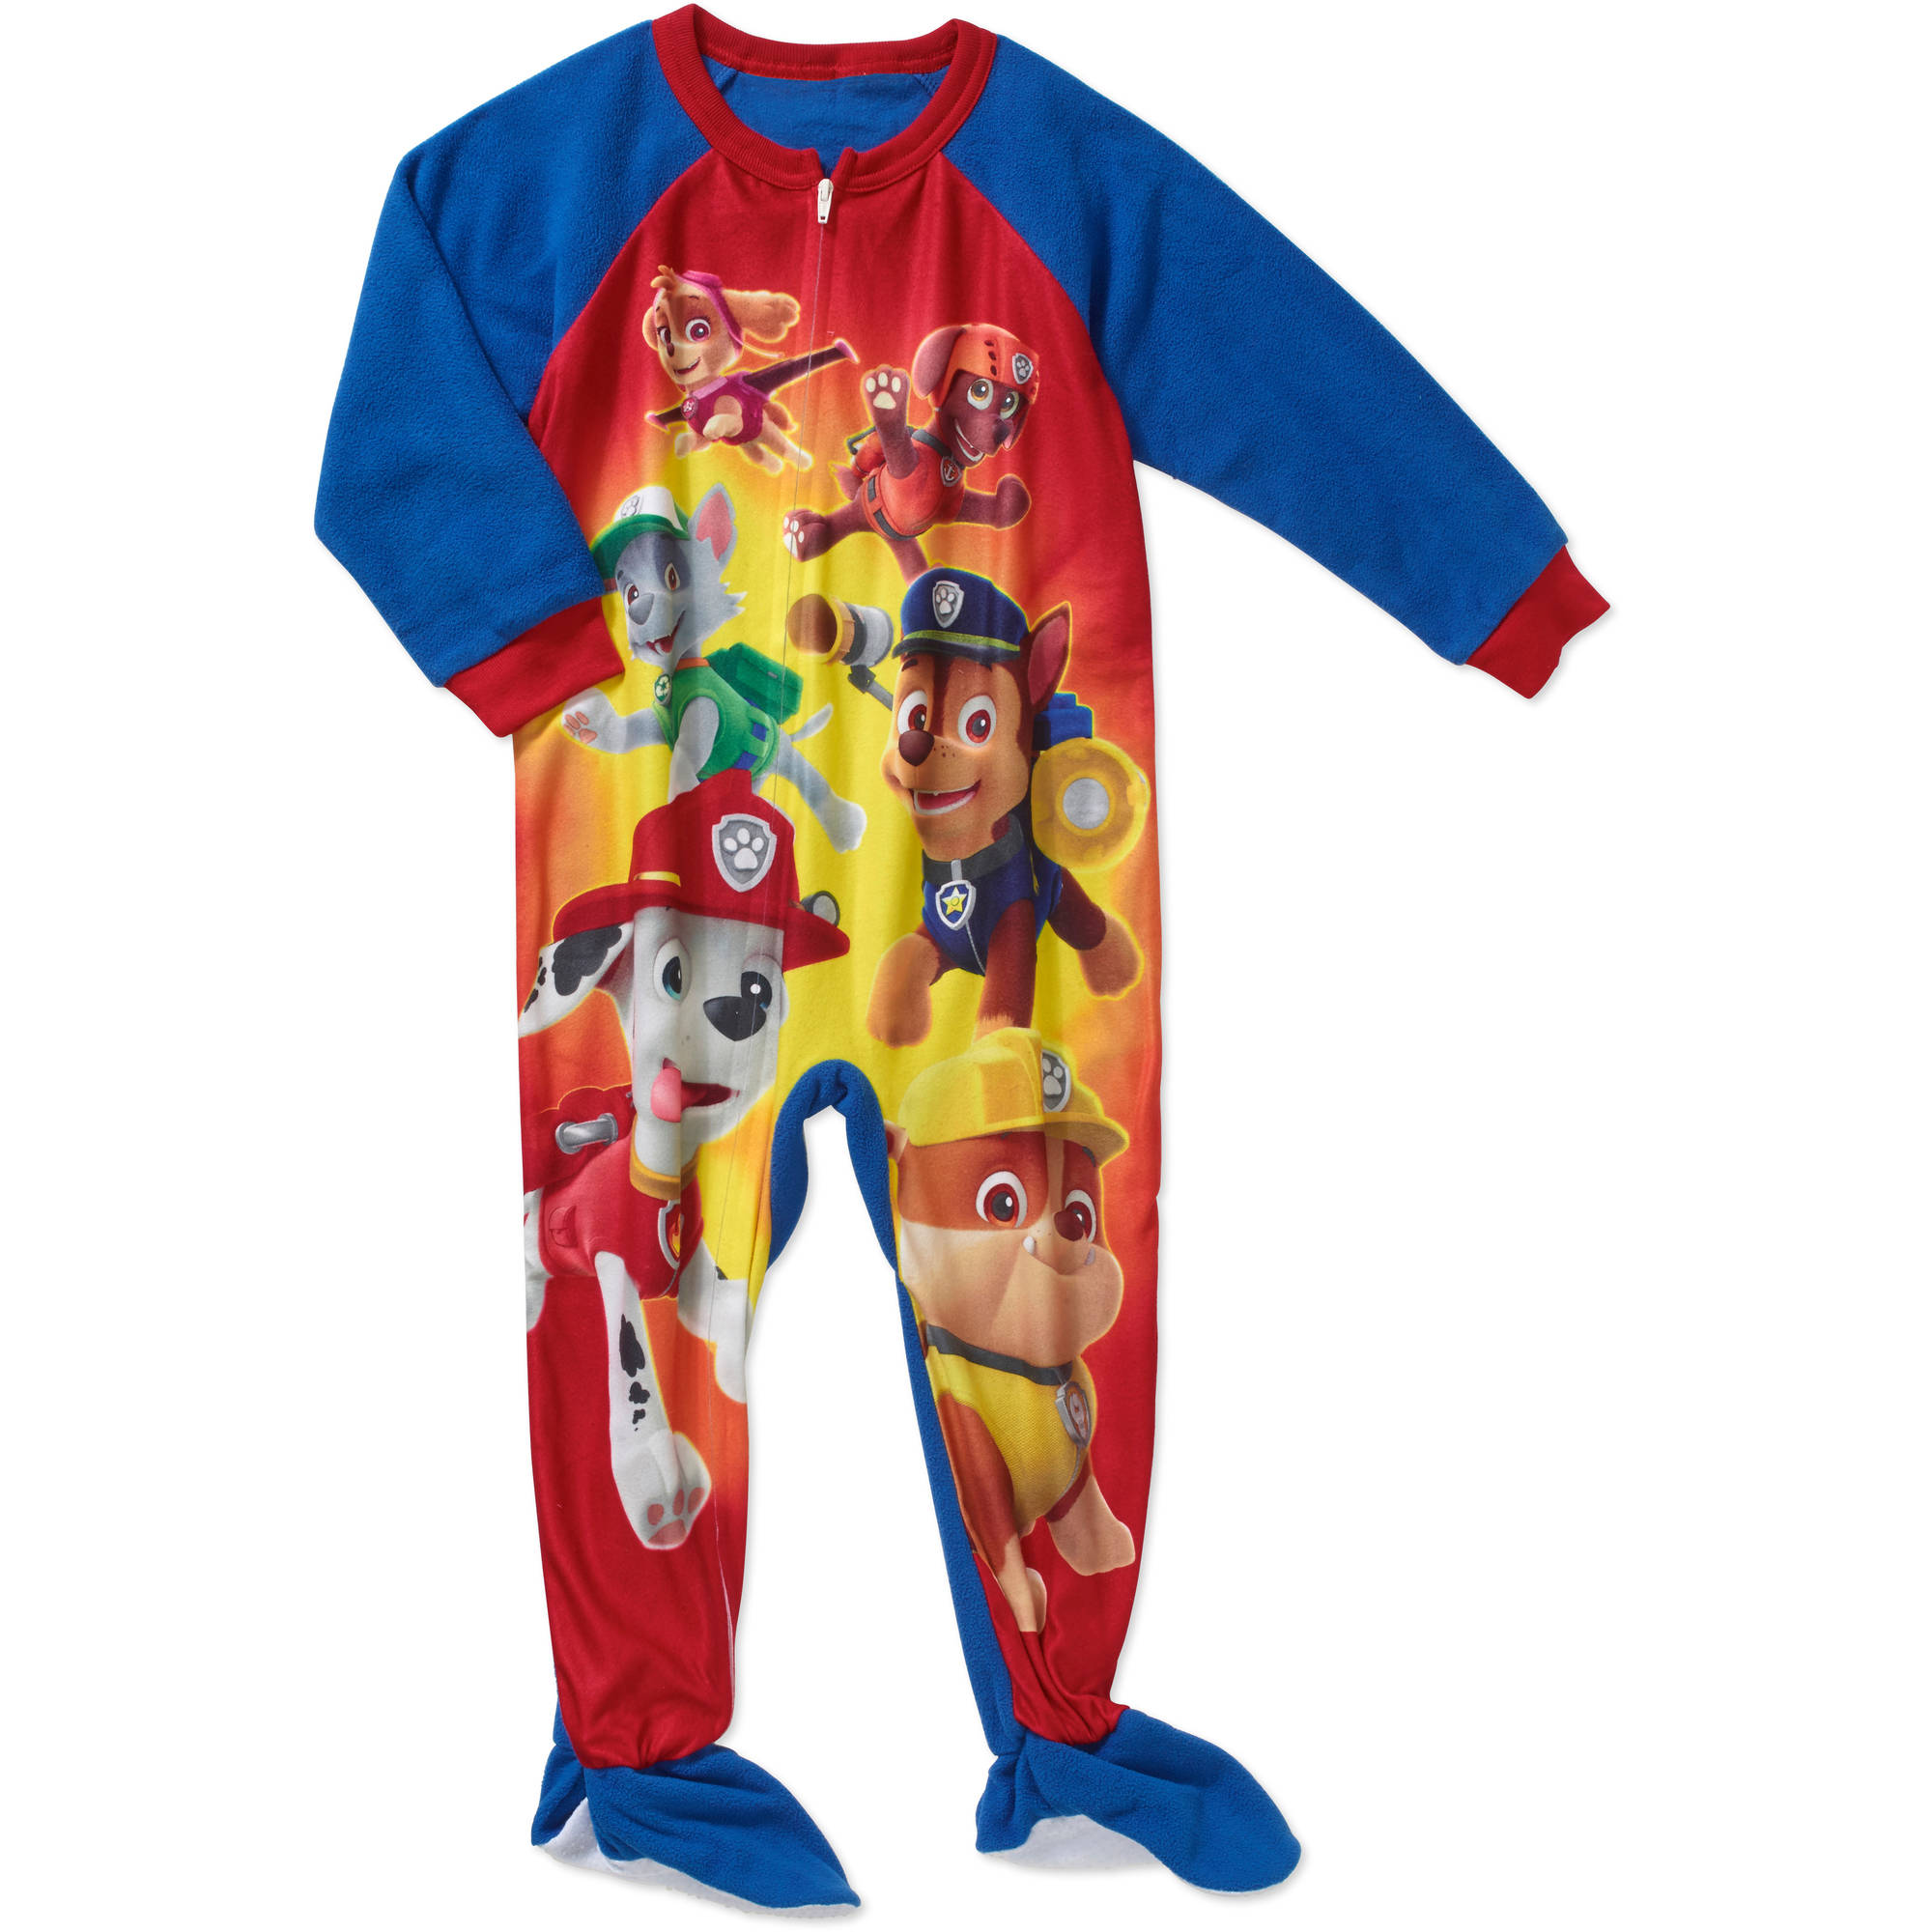 Toddler Boy Micro Fleece Footed PJ